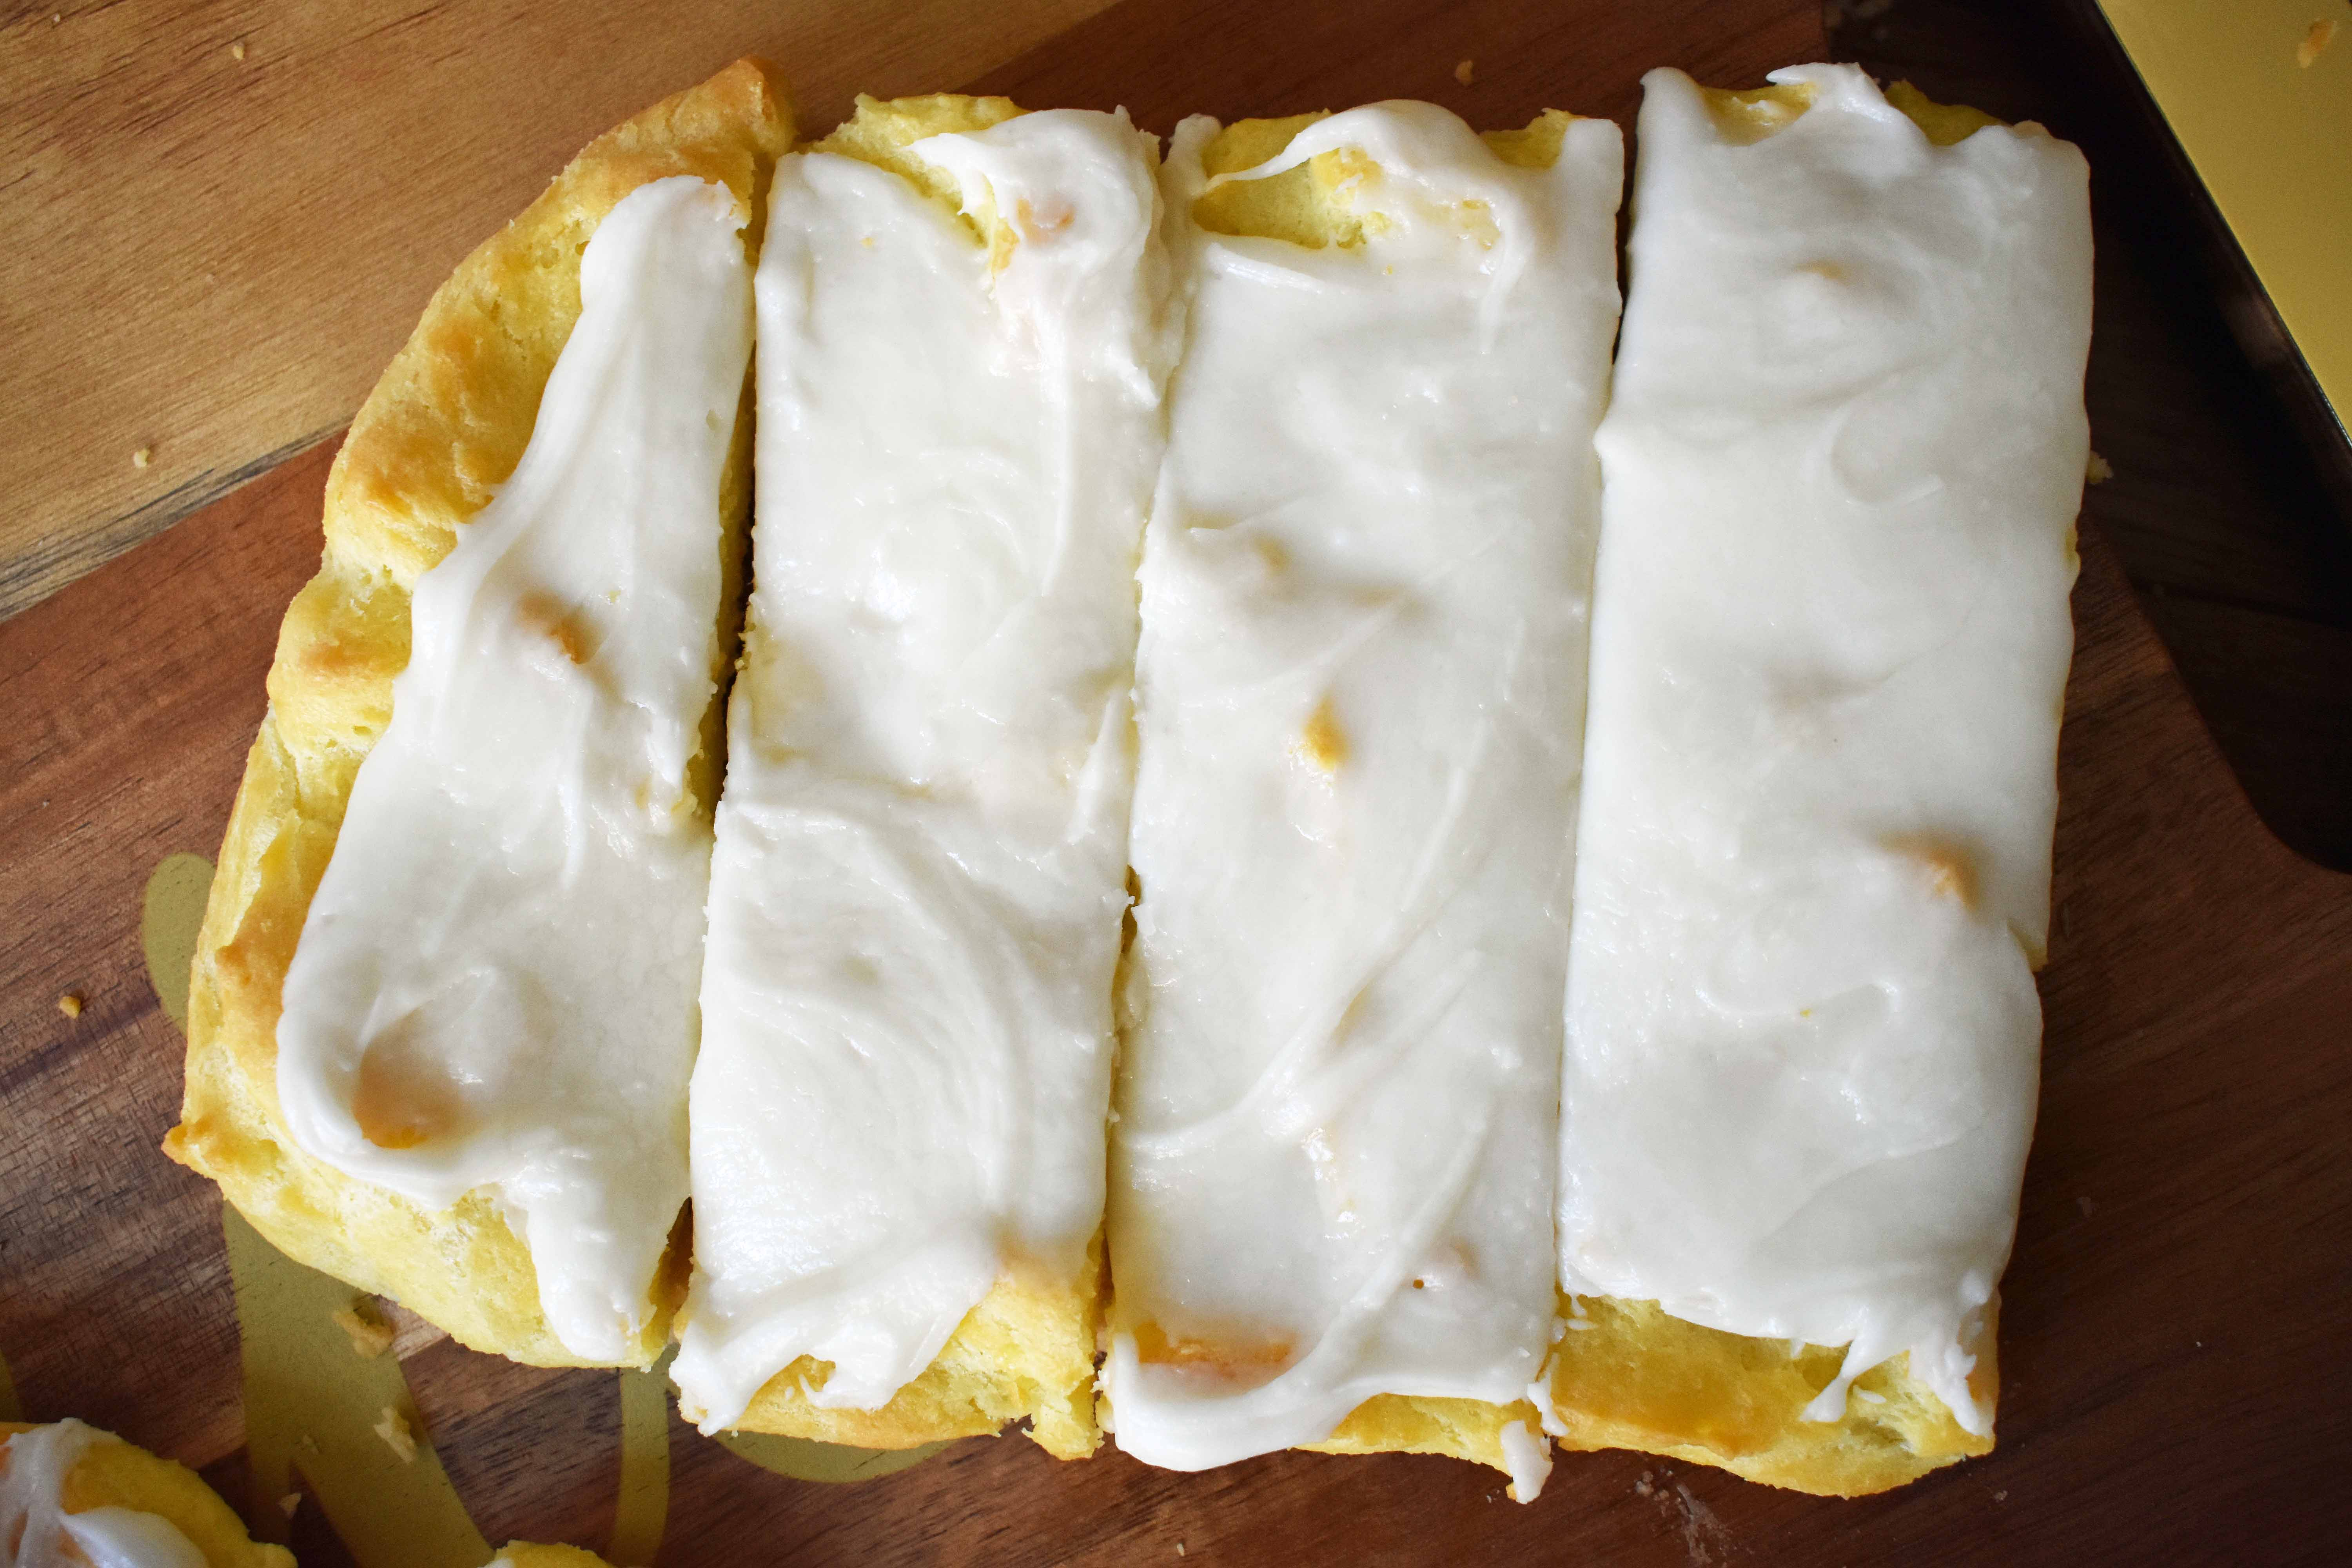 Swedish Pastry by Modern Honey. Buttery flaky layers with almond filling and topped with sweet cream frosting. A popular homemade European pastry.